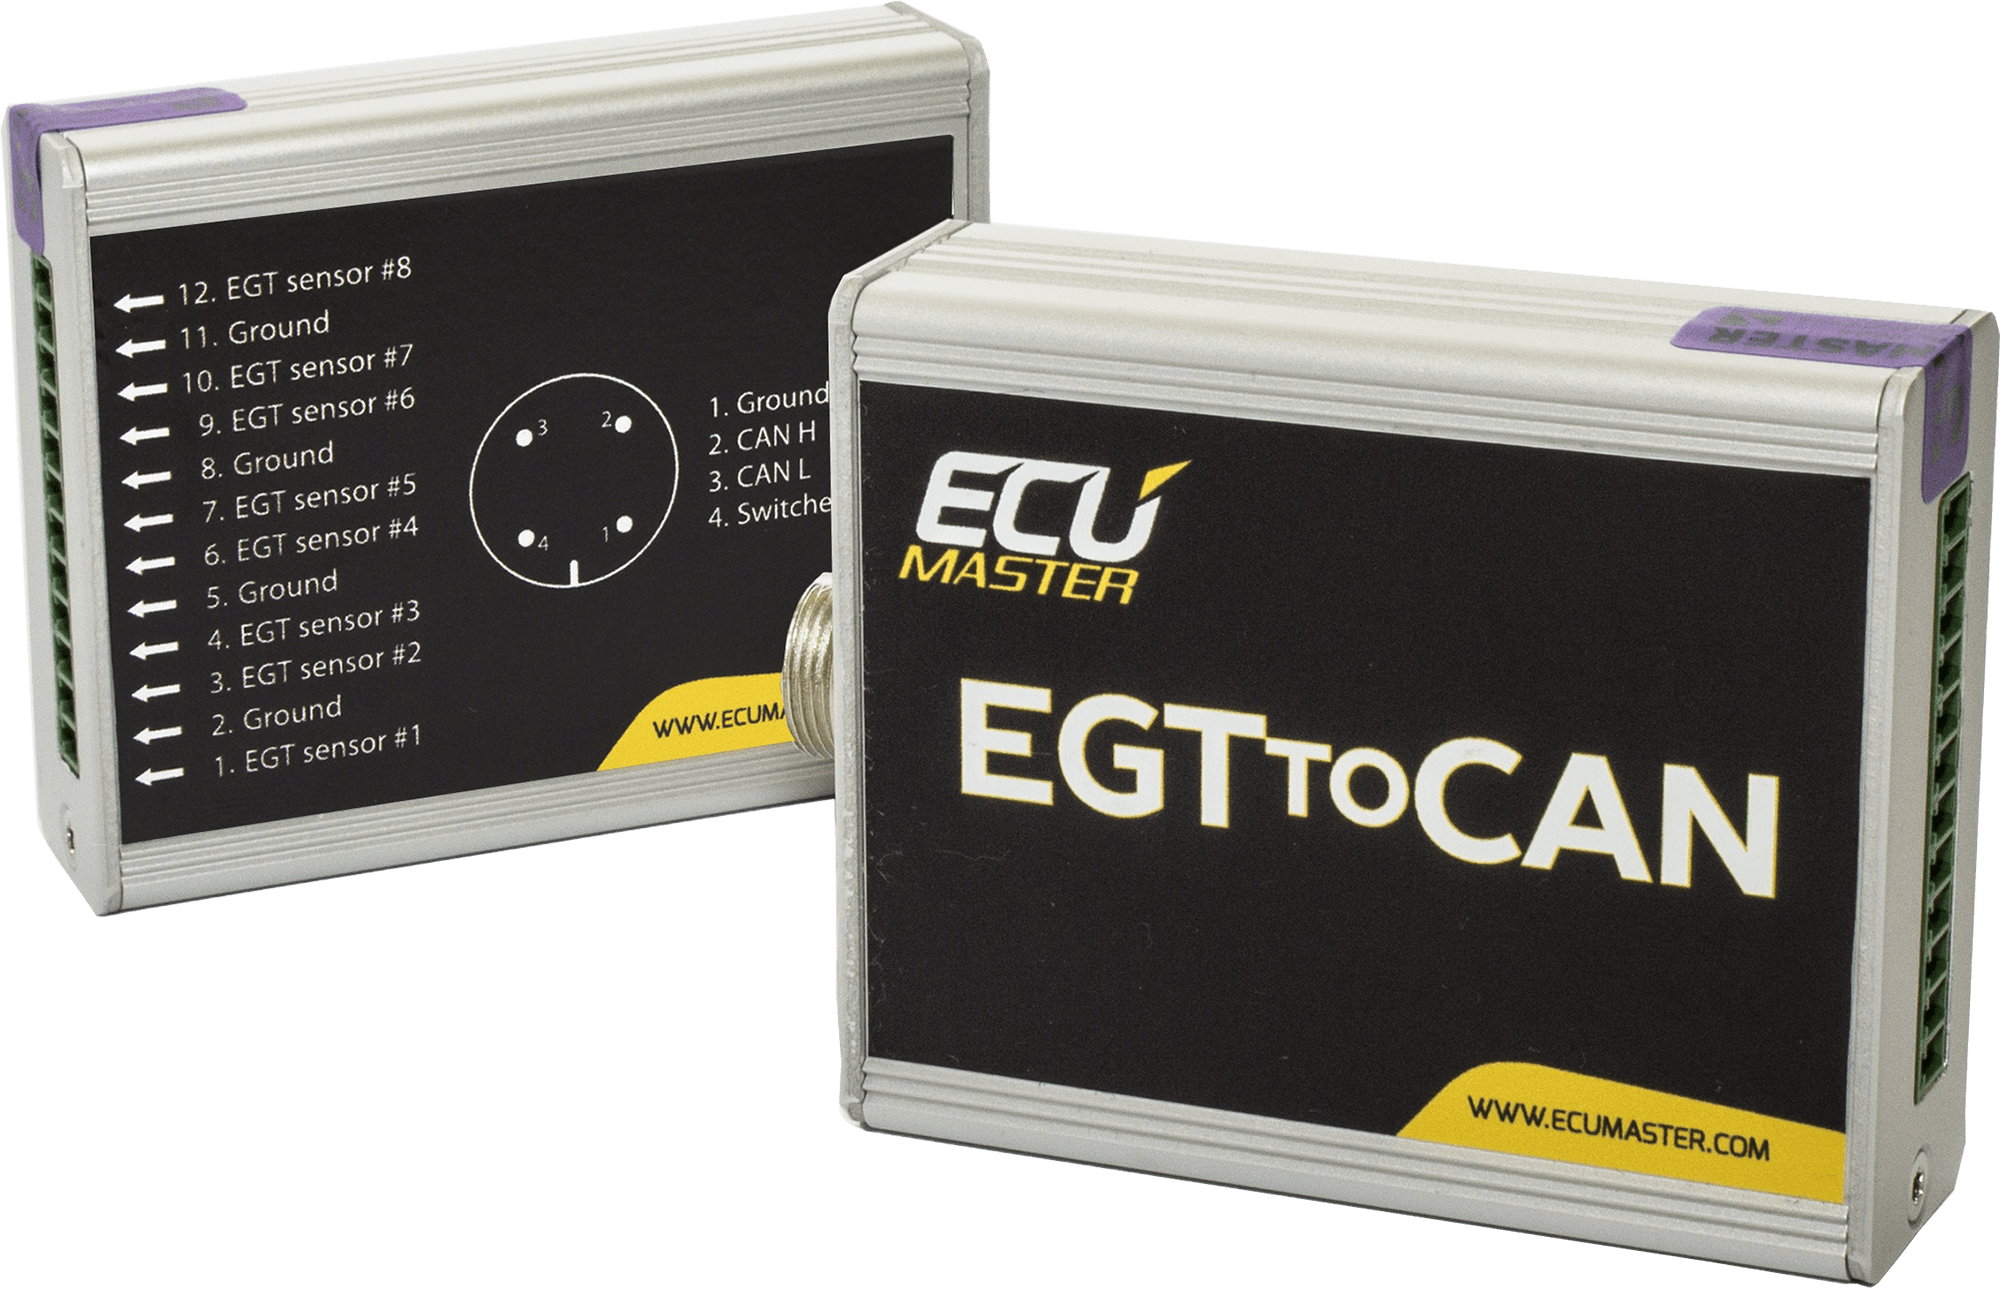 egt2can-01